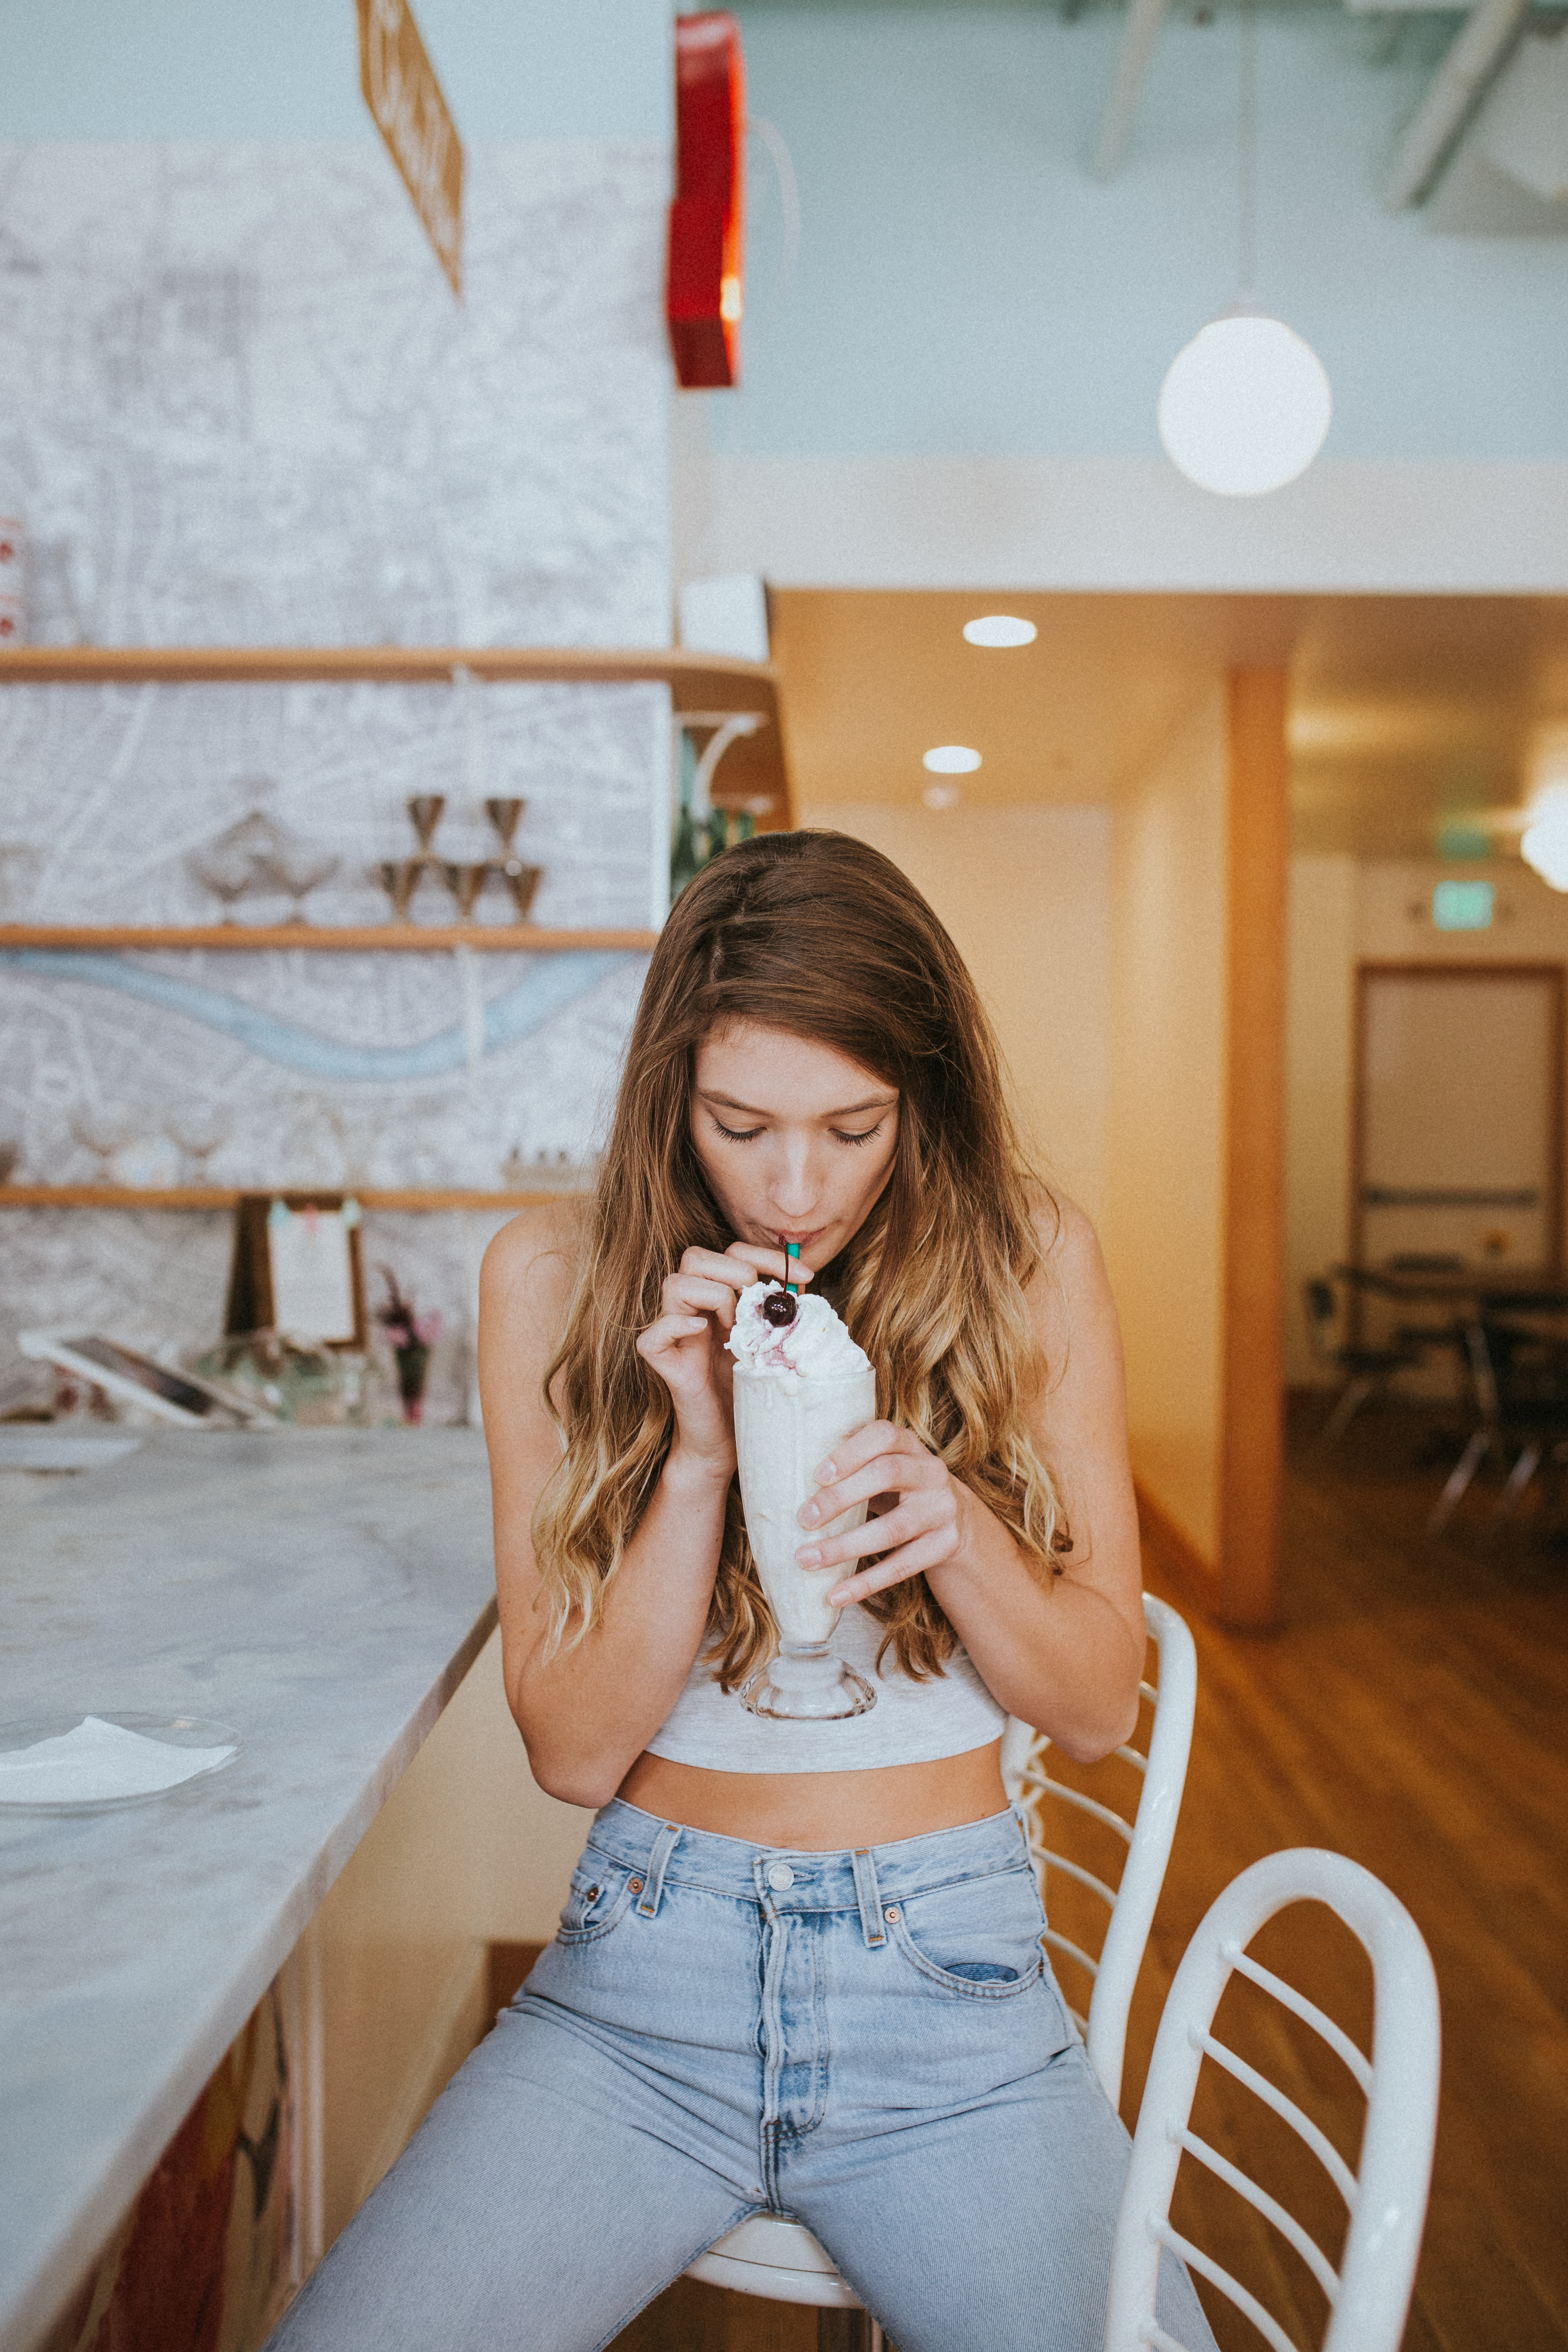 woman zipping ice cream float while sitting on chair inside room with lights turned on